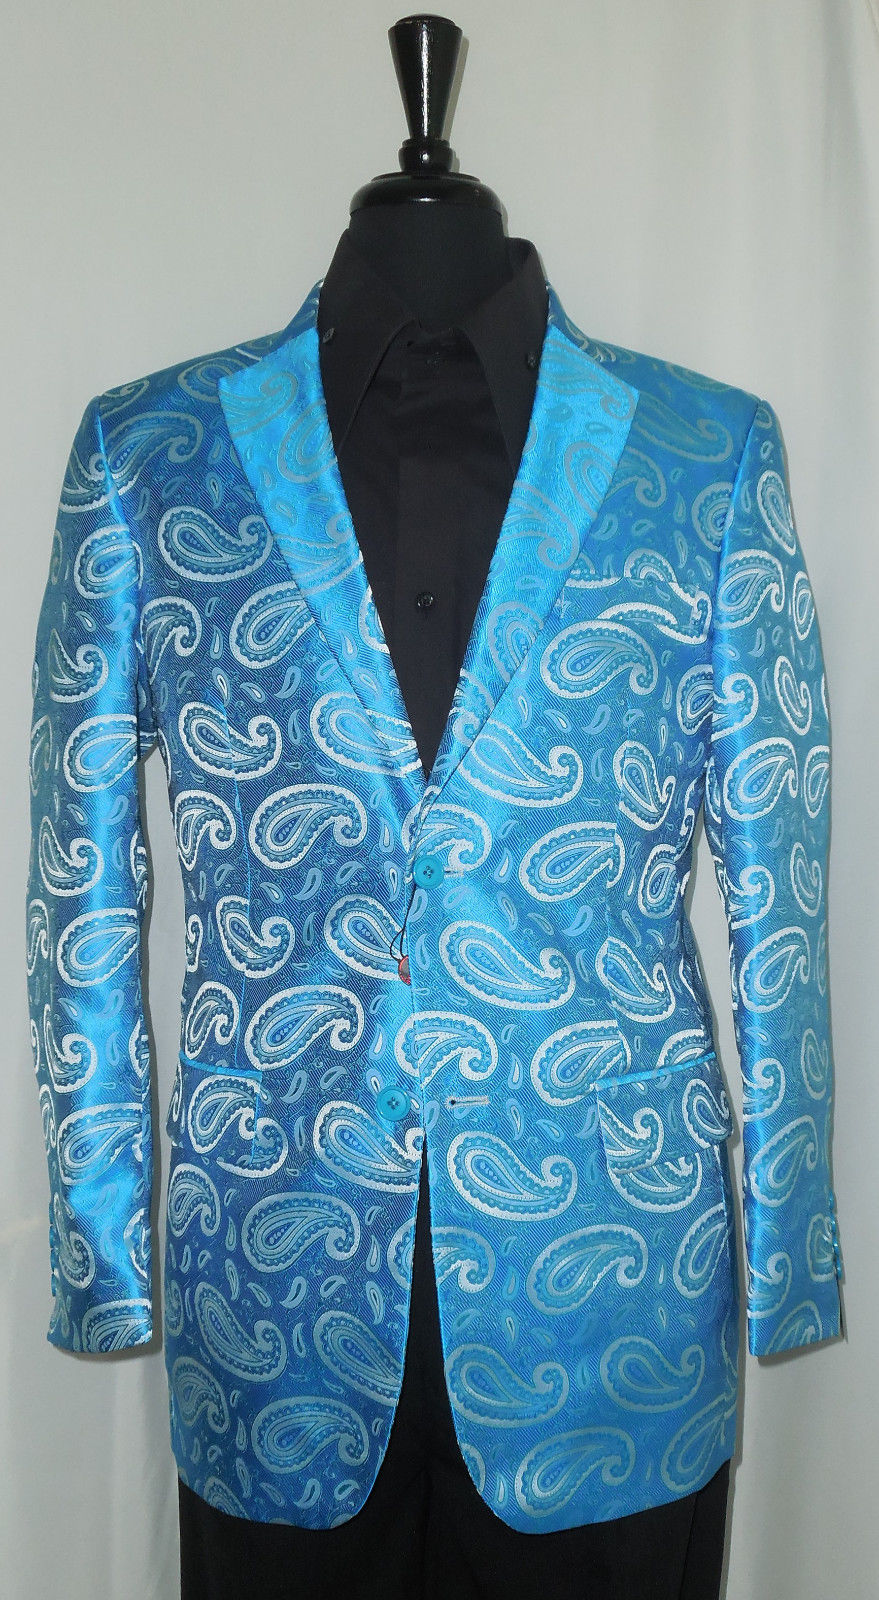 Mens Designer Leonardi Beautiful Shiny Turquoise Paisley Party Jacket Style 864 - Nader Fashion Las Vegas